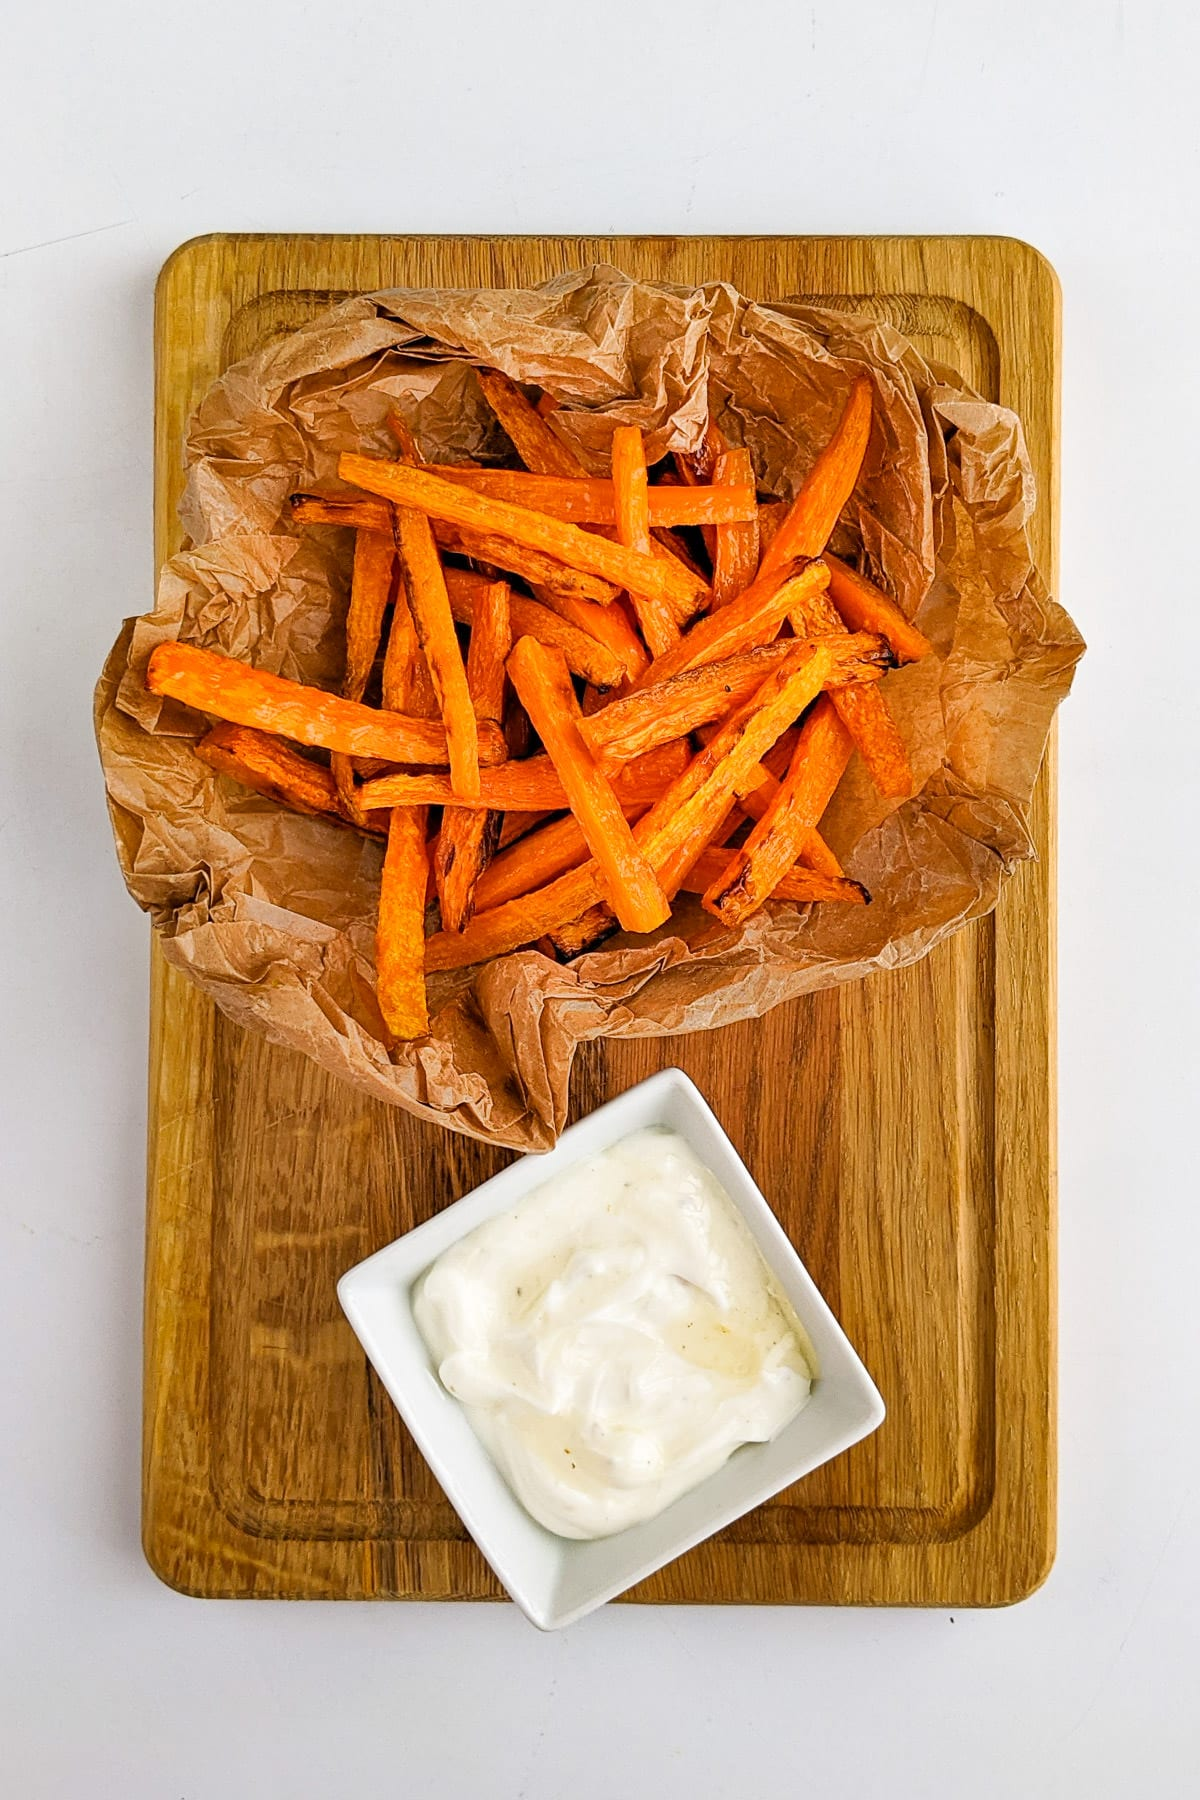 Top view of carrot fries near a white sauce.